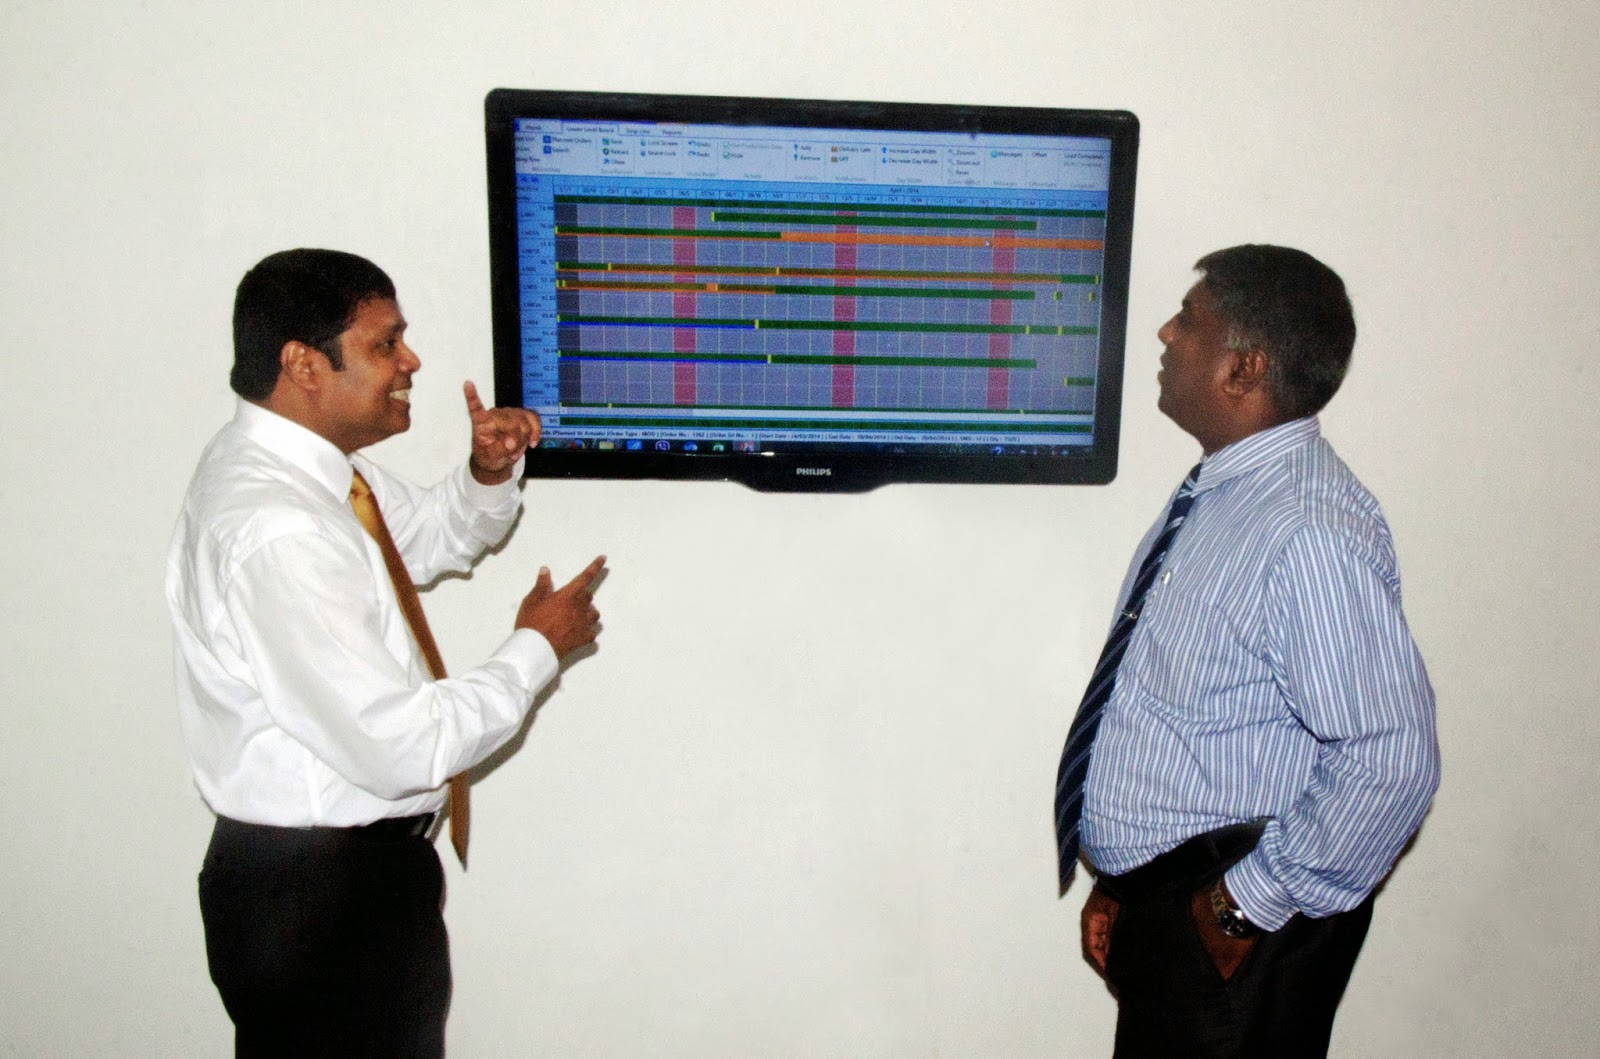 Saman Jayawardena, COO of ExcelSoft (at left) demonstrates Foresight, a cutting-edge performance optimized graphical production planning and scheduling tool to Joseph Thasan, CEO of Trend Setters. Foresight is designed specifically to optimise the use of resources in the apparel industry. The tool's graphical display provides a progress update at a glance.